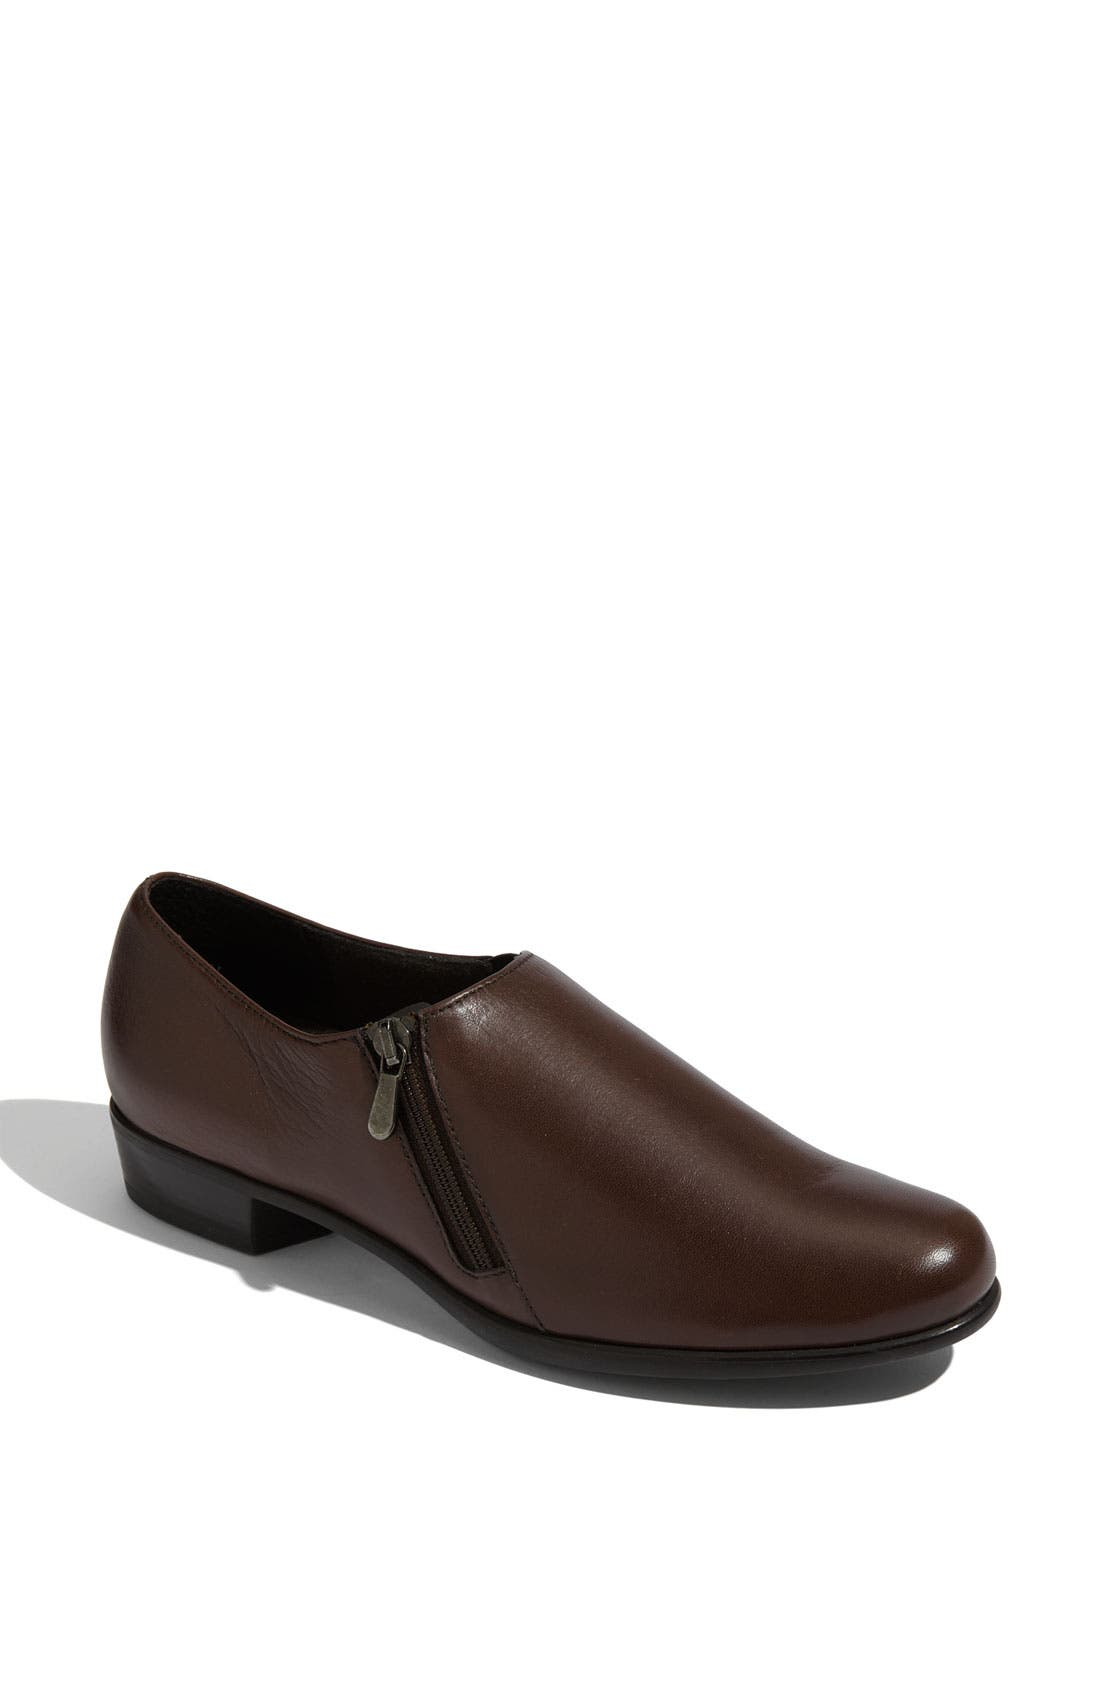 Main Image - Munro 'Derby' Loafer